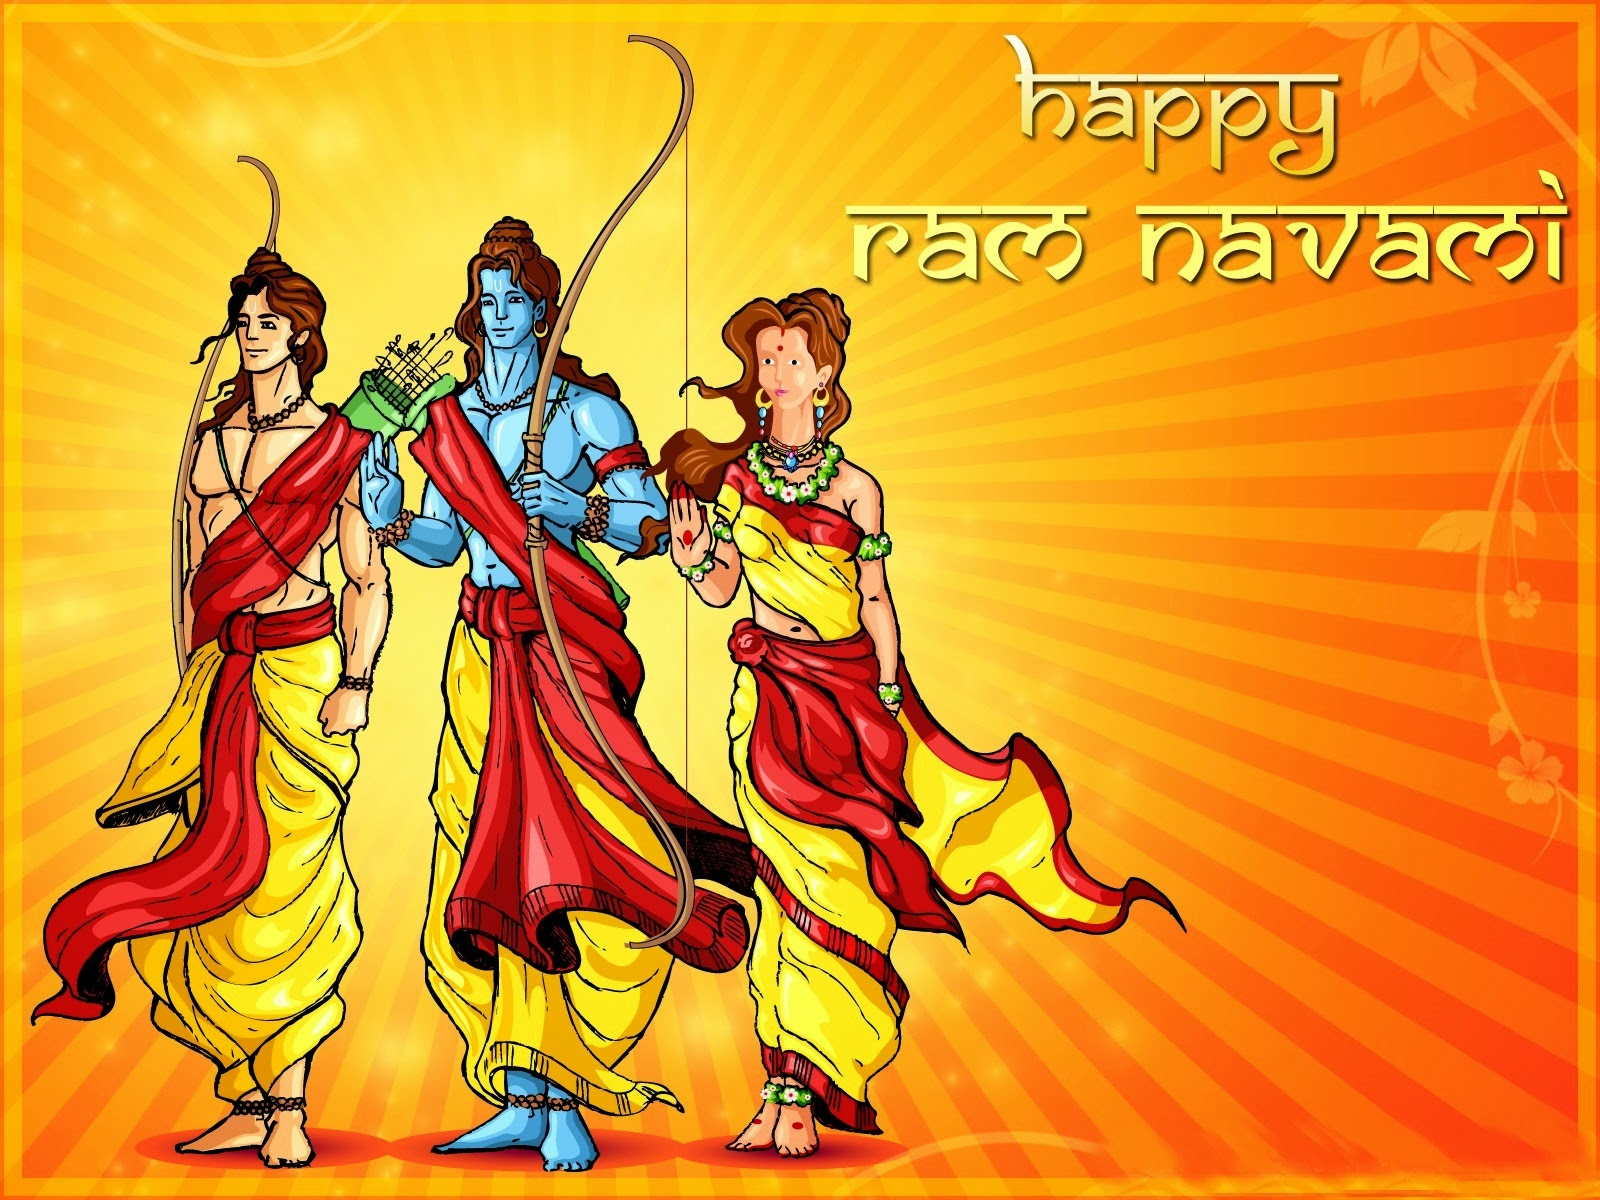 Happy Navratri Wallpapers 2015